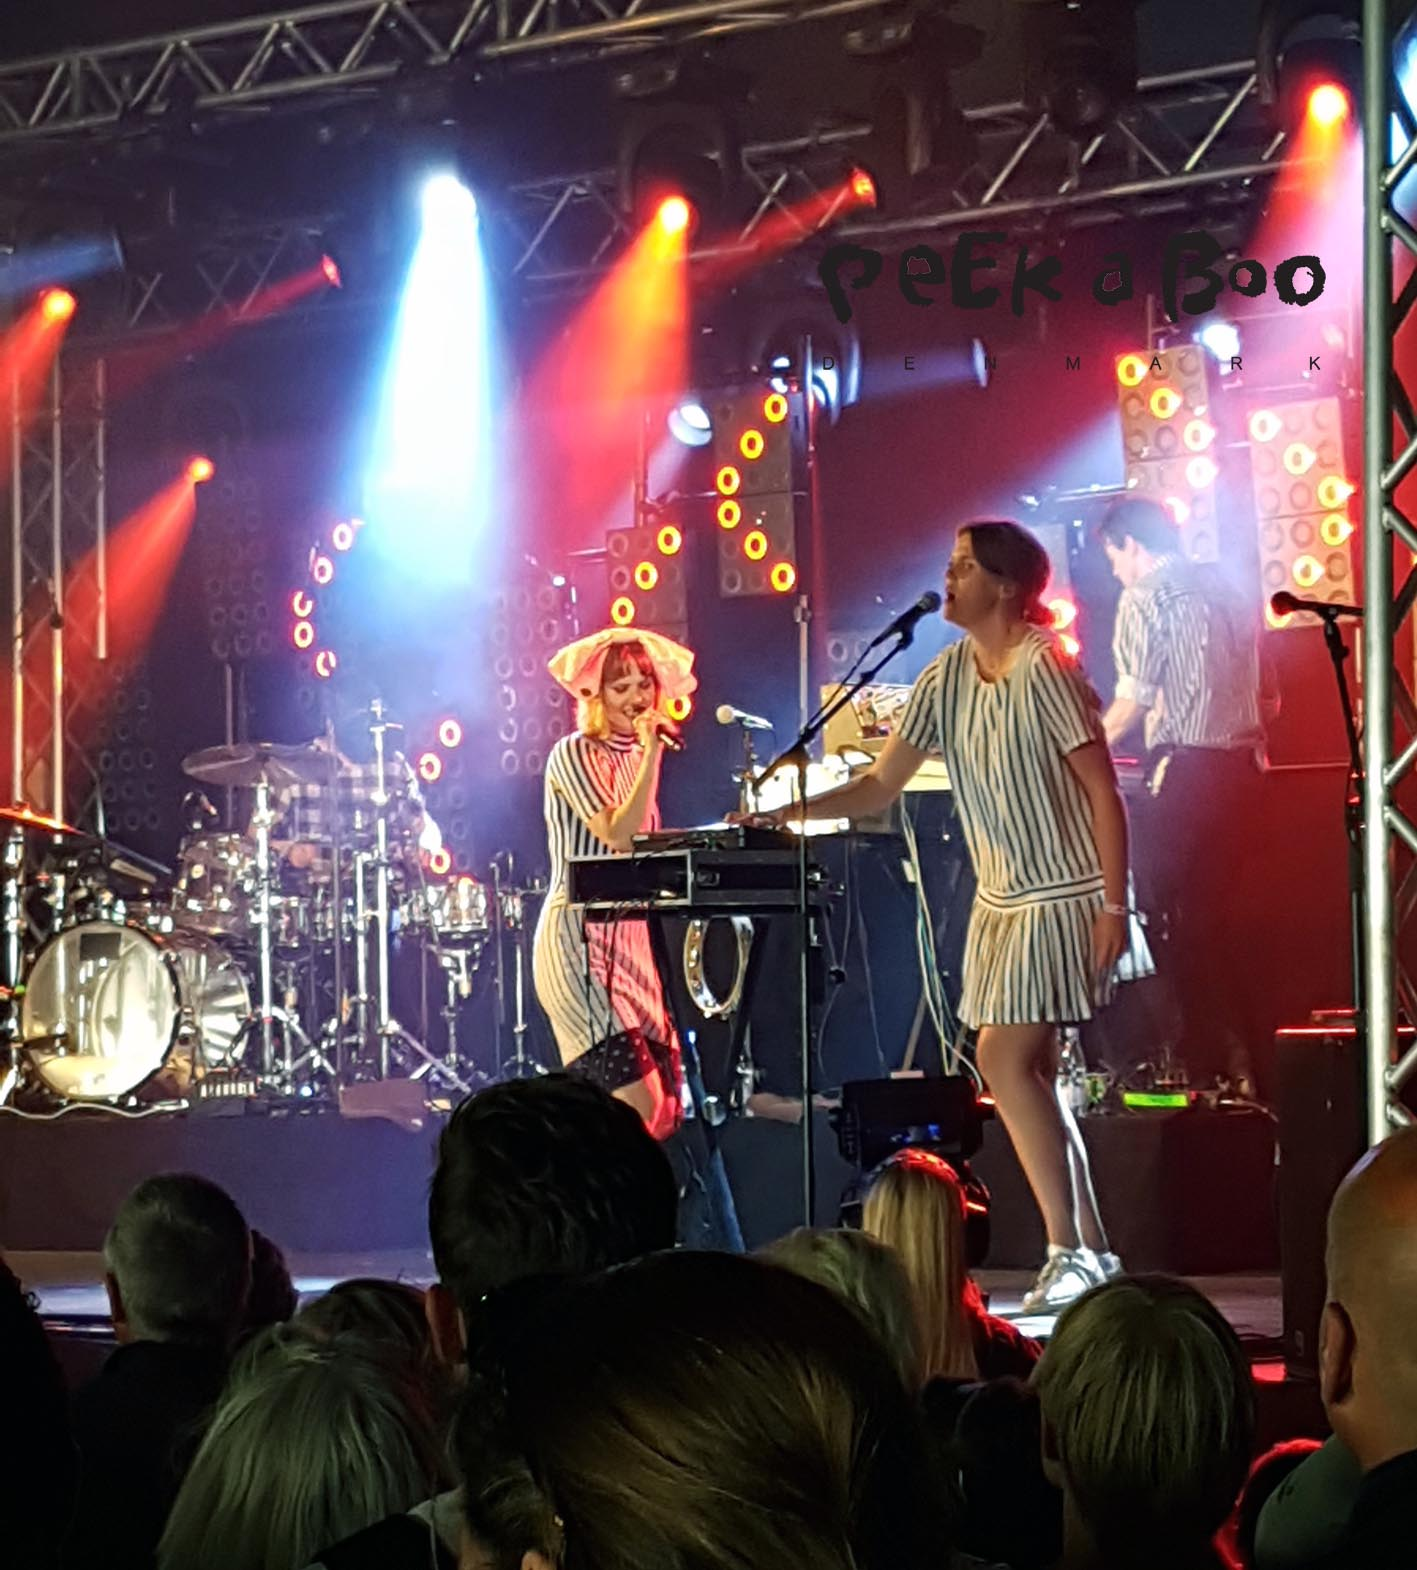 The Danish female singer Oh Land at Vig Festvalen 2016.